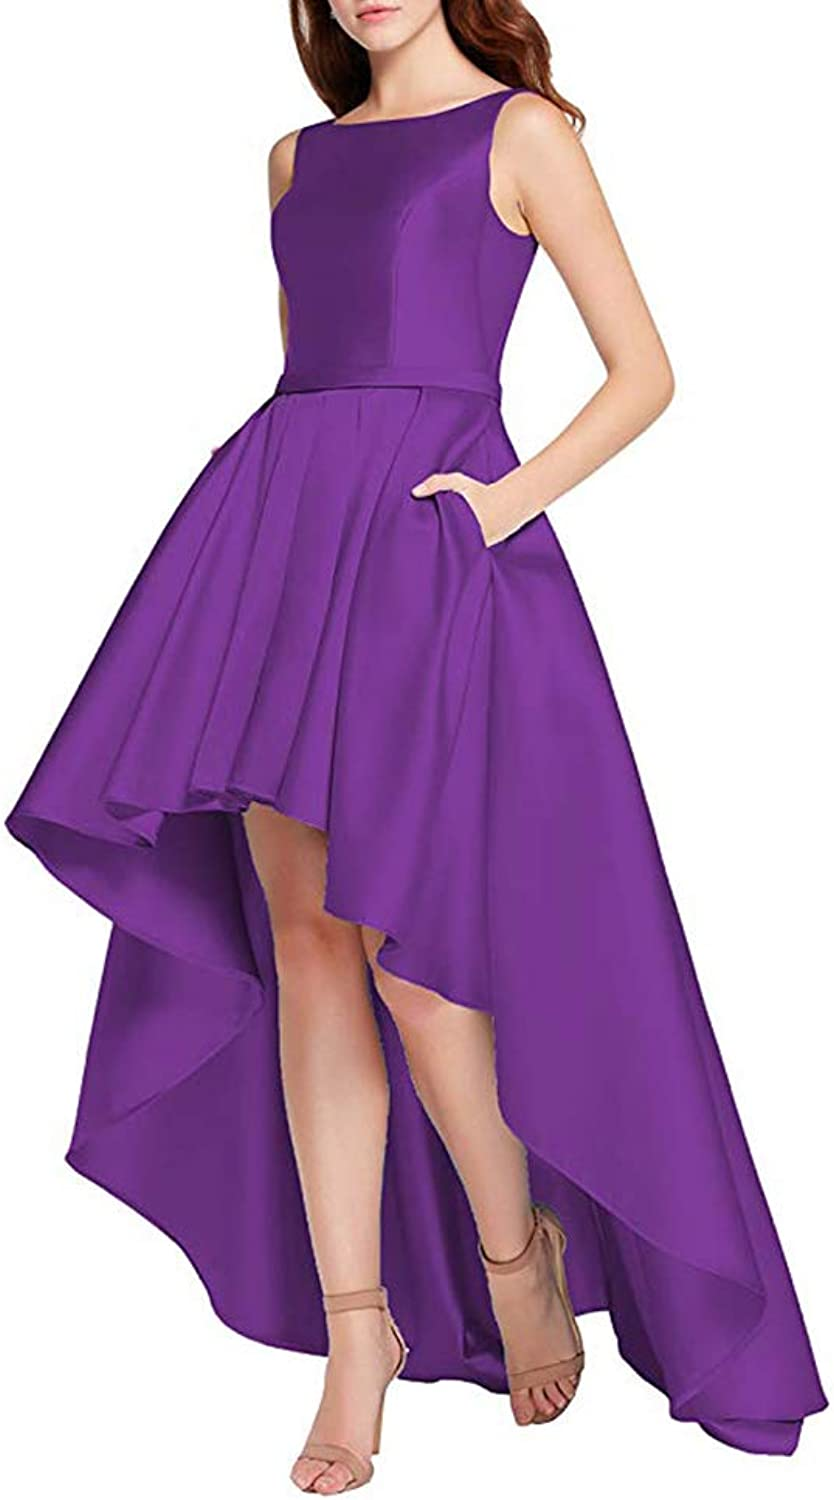 XSWPL Women's High Low Satin Prom Evening Dress Long Formal Gown with Pockets